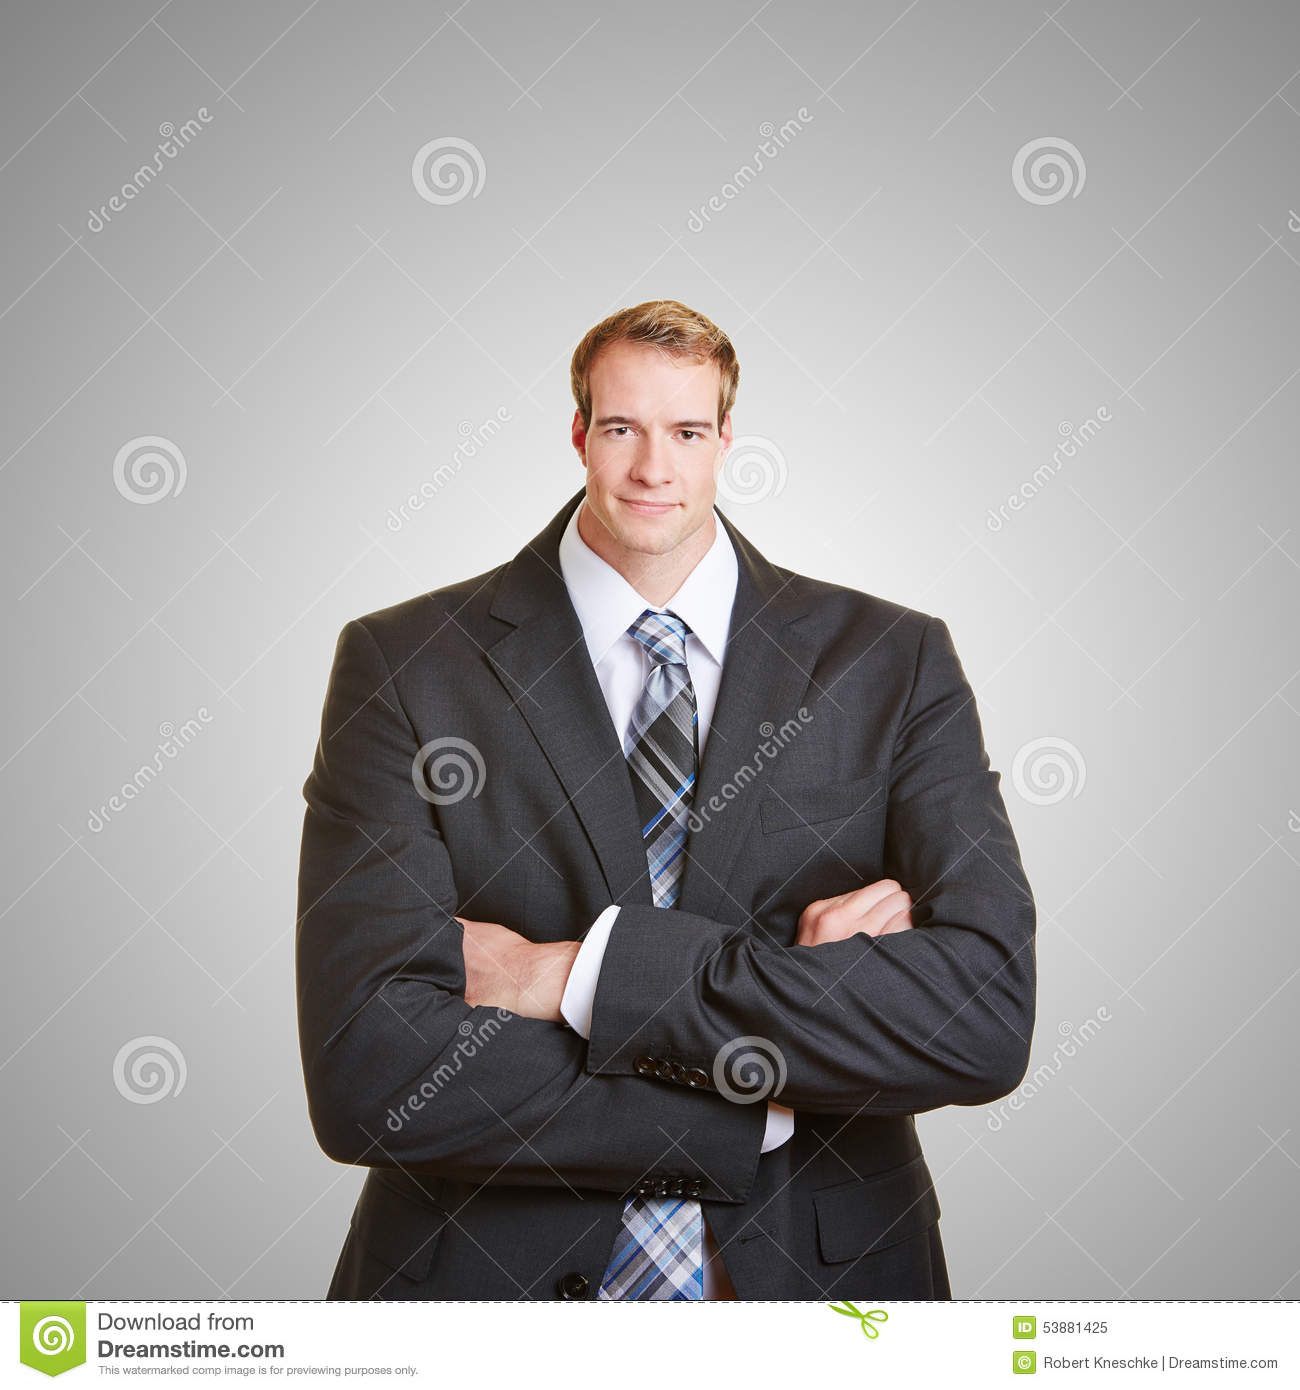 business-man-small-head-funny-his-arms-crossed-53881425.jpg